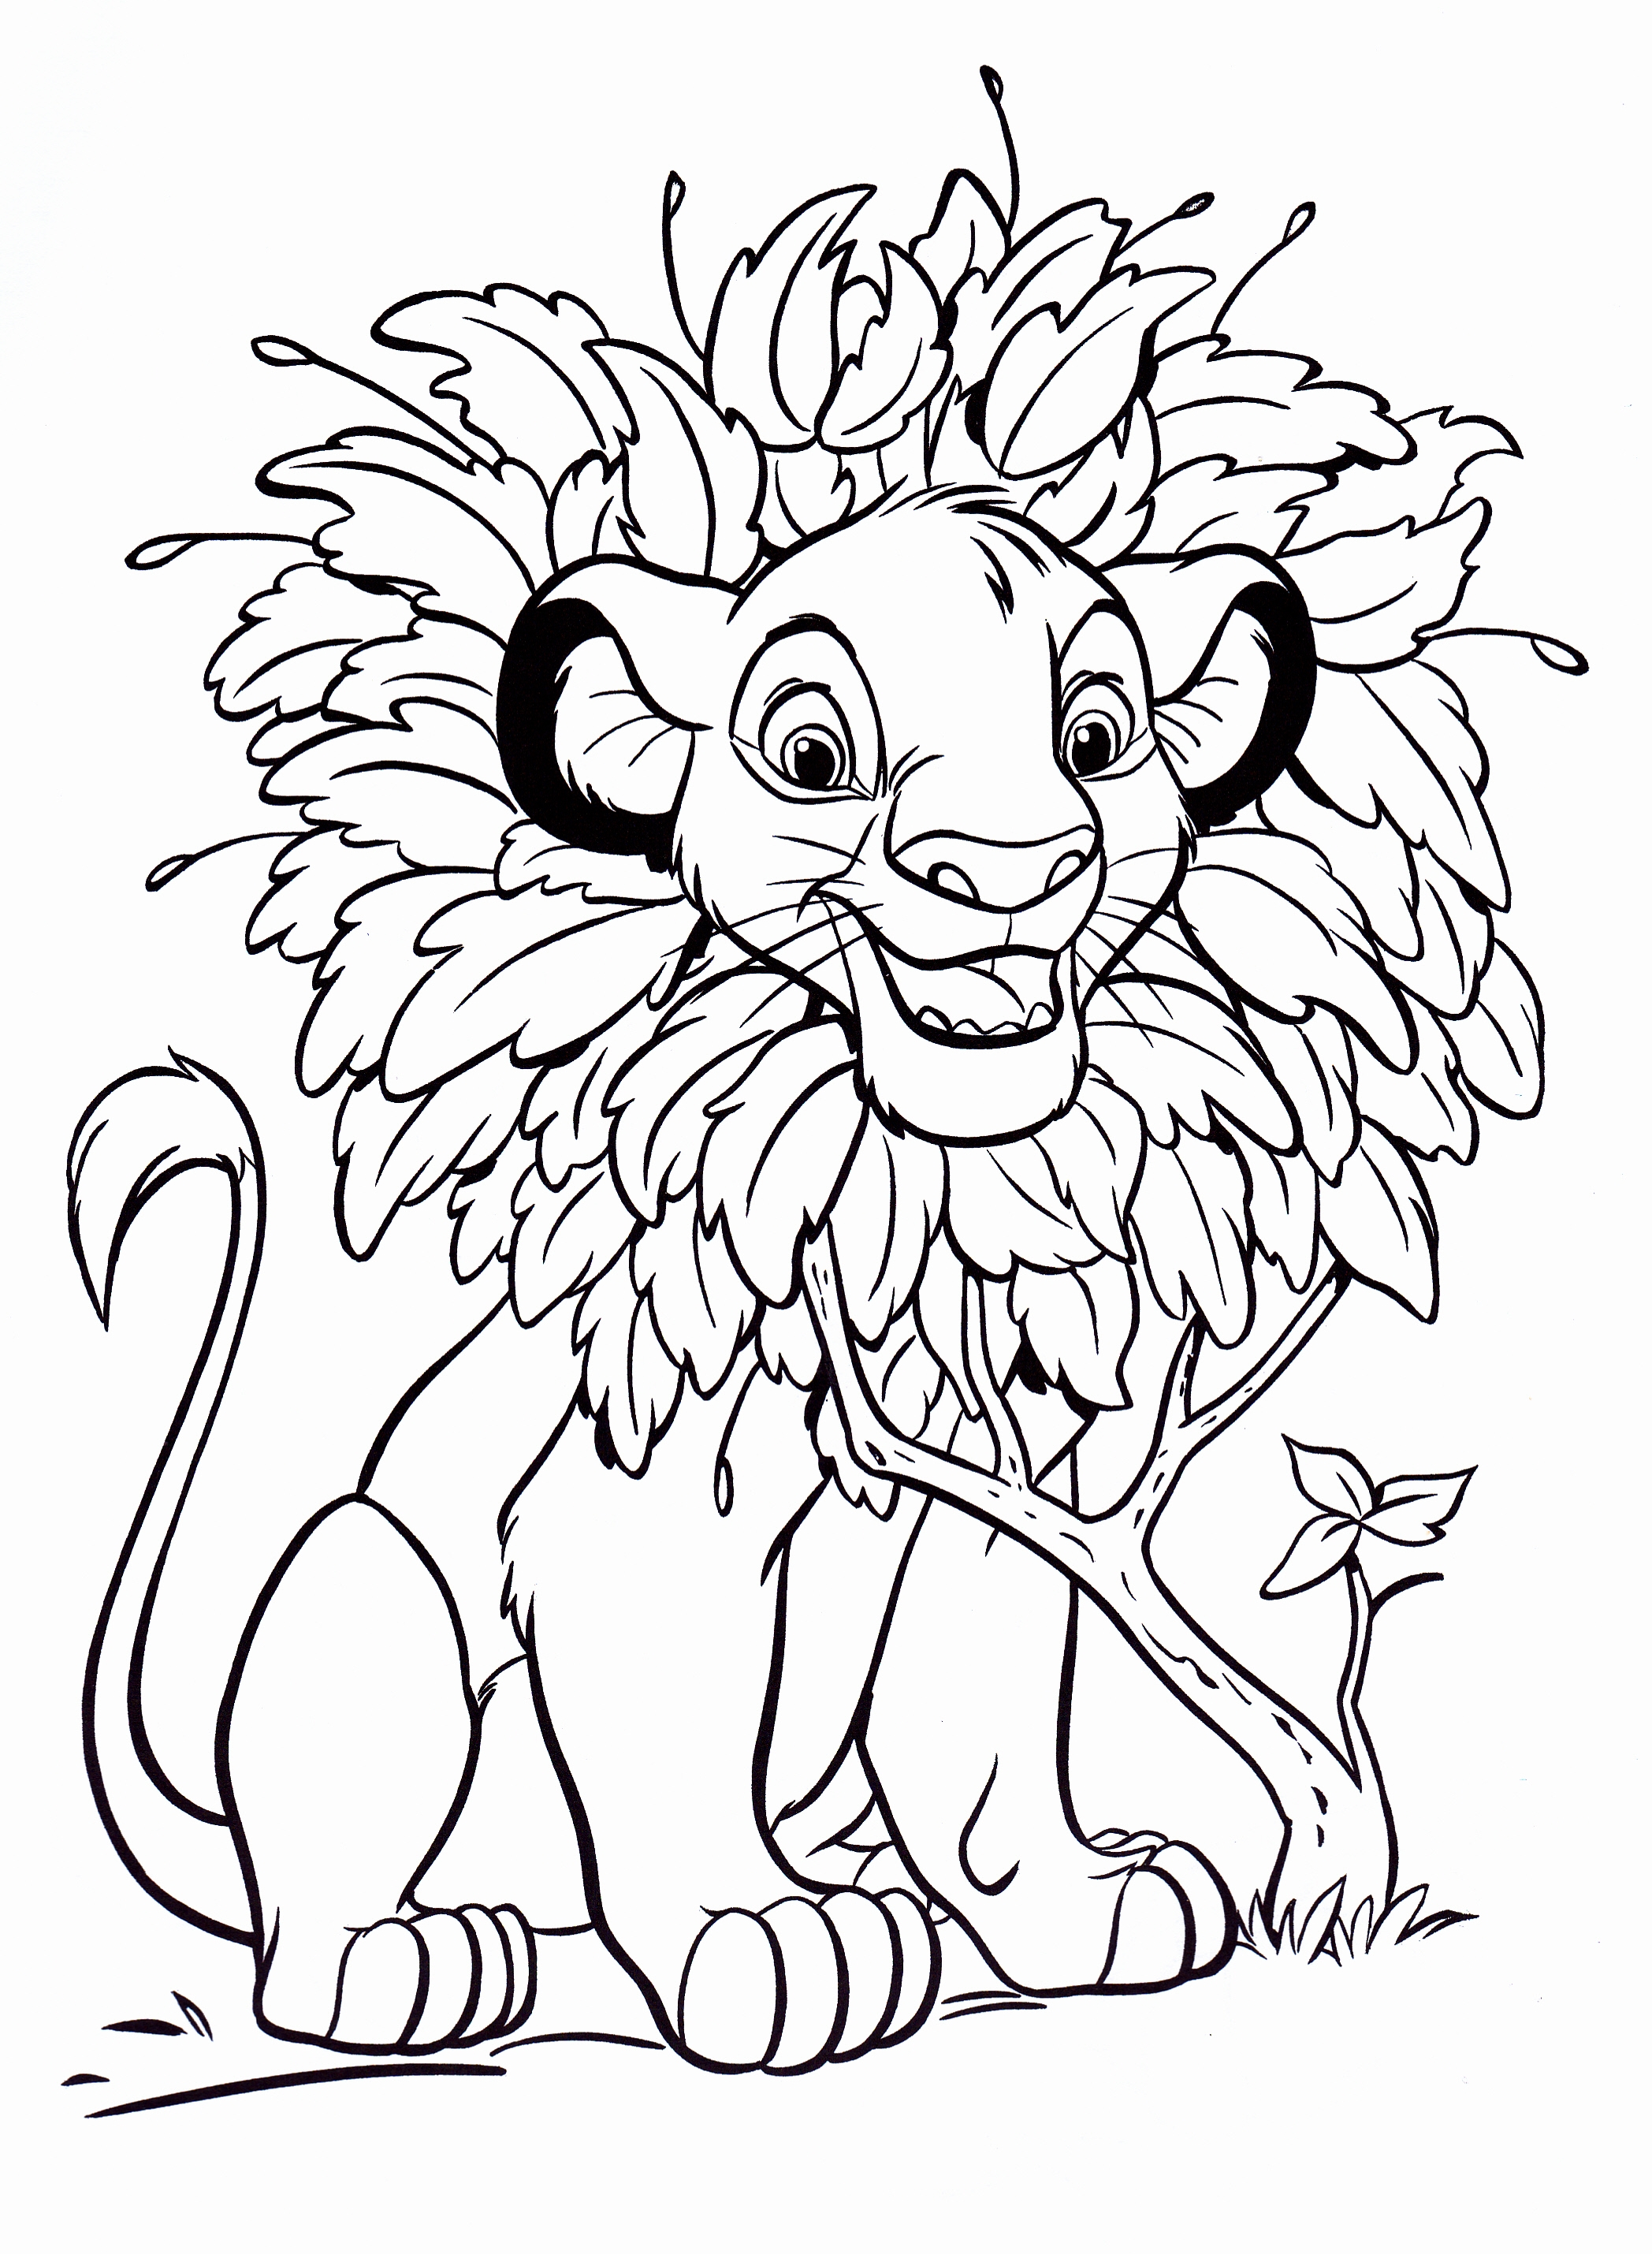 Disney Coloring Pages (9) - Coloring Kids | free coloring pages for toddlers disney